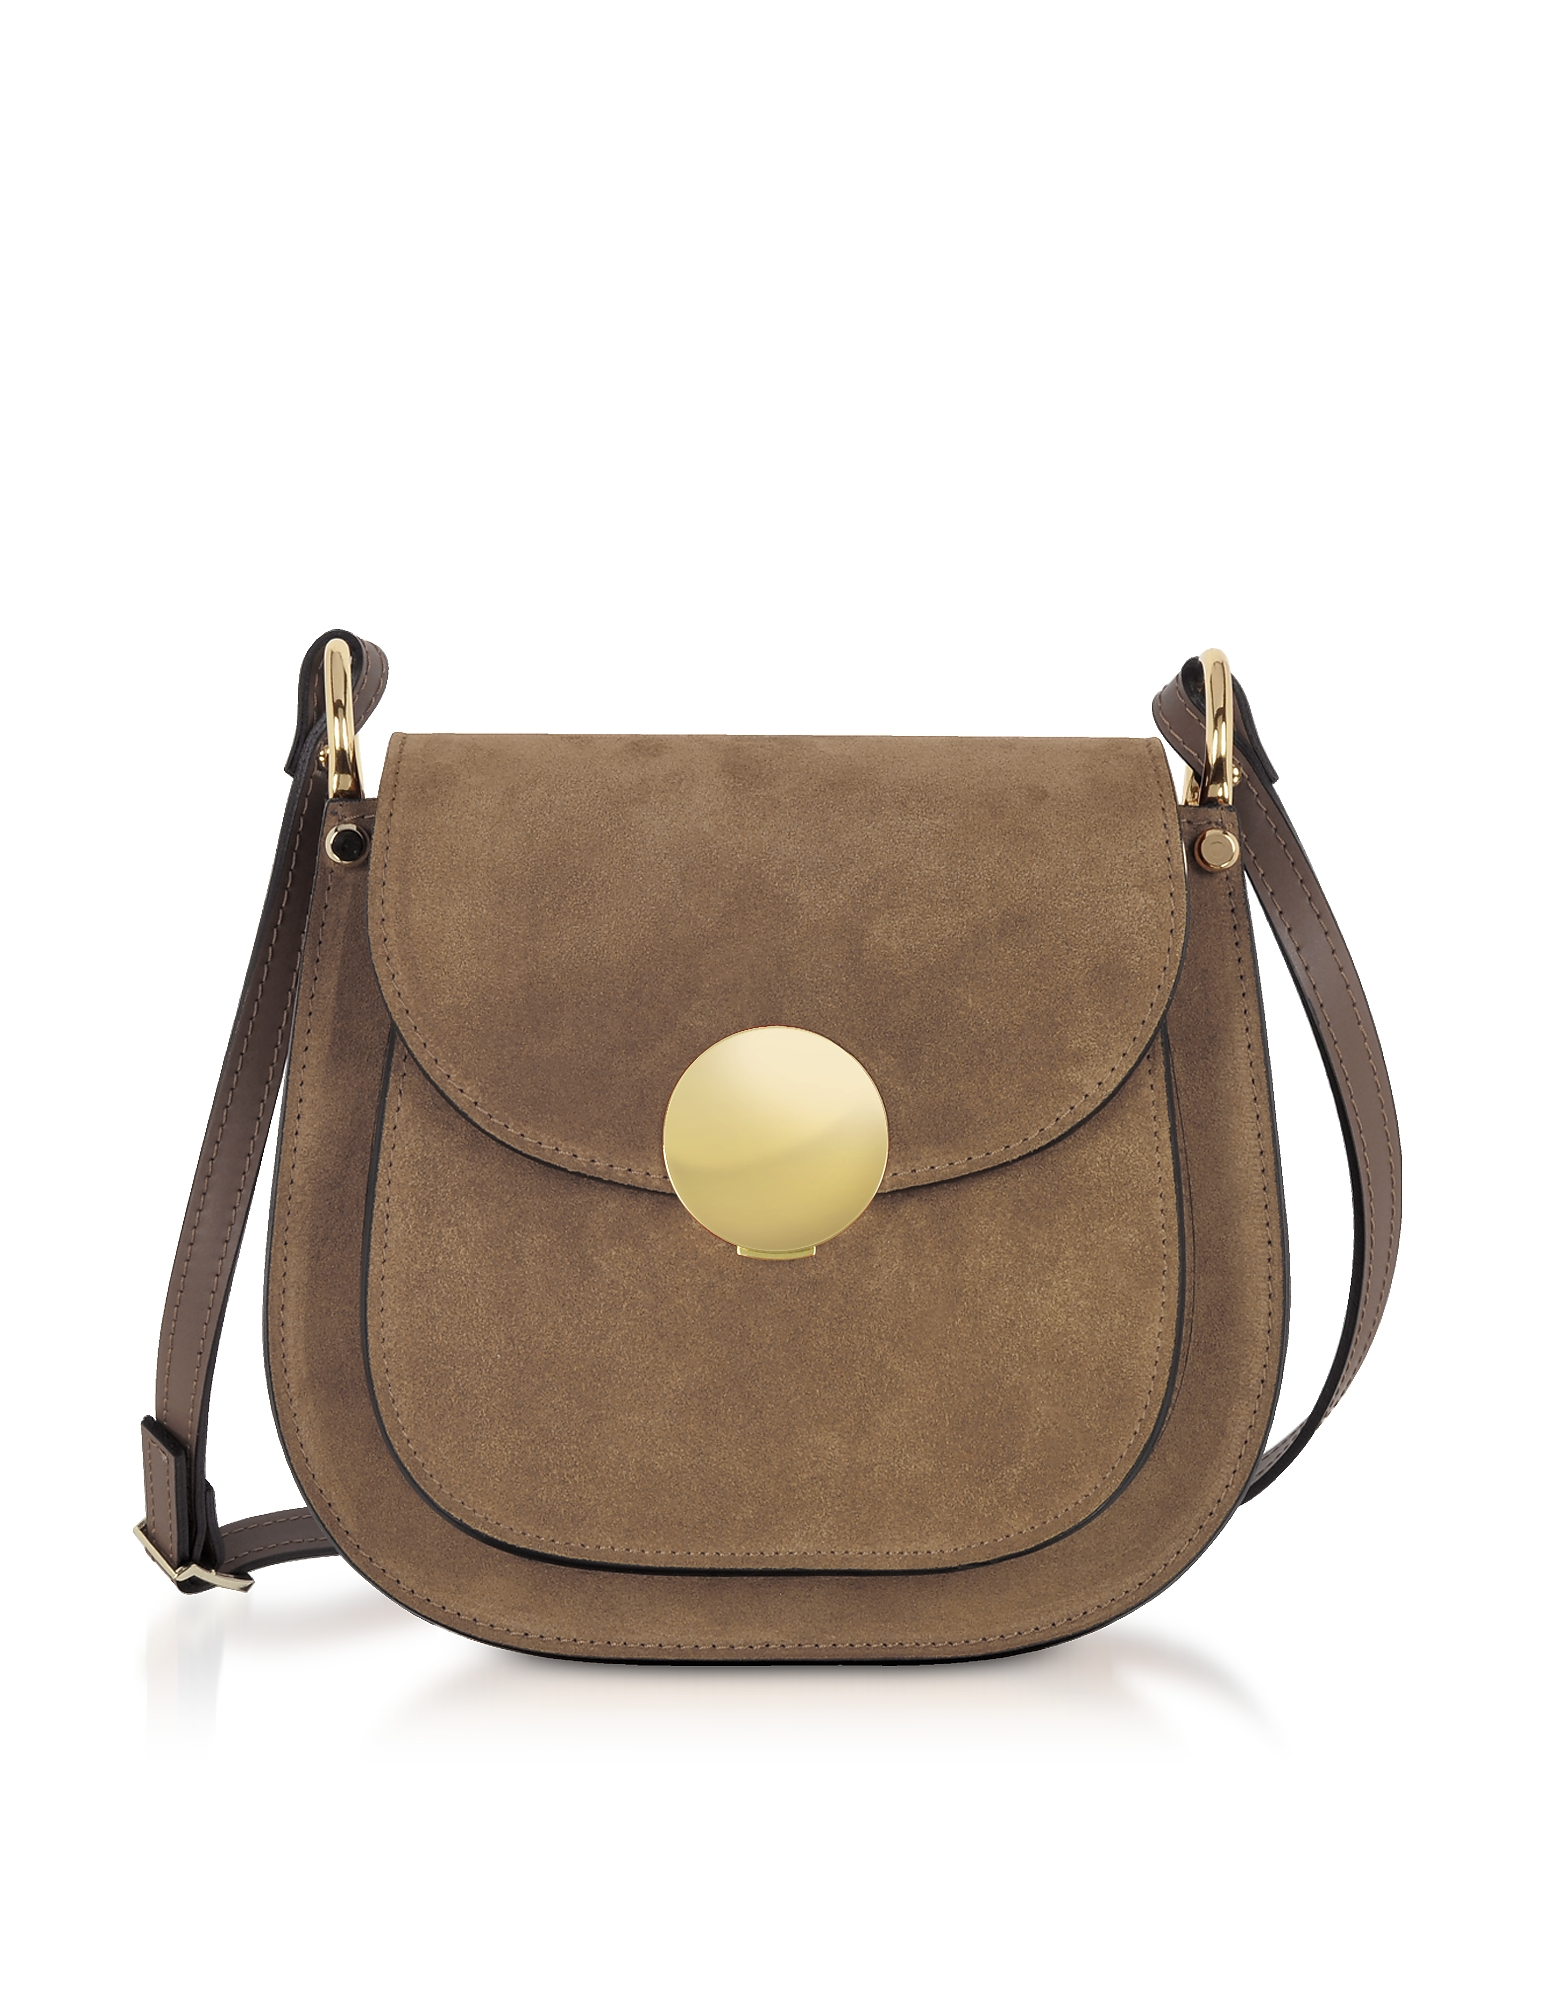 Le Parmentier Handbags, Agave Suede and Smooth Leather Shoulder Bag